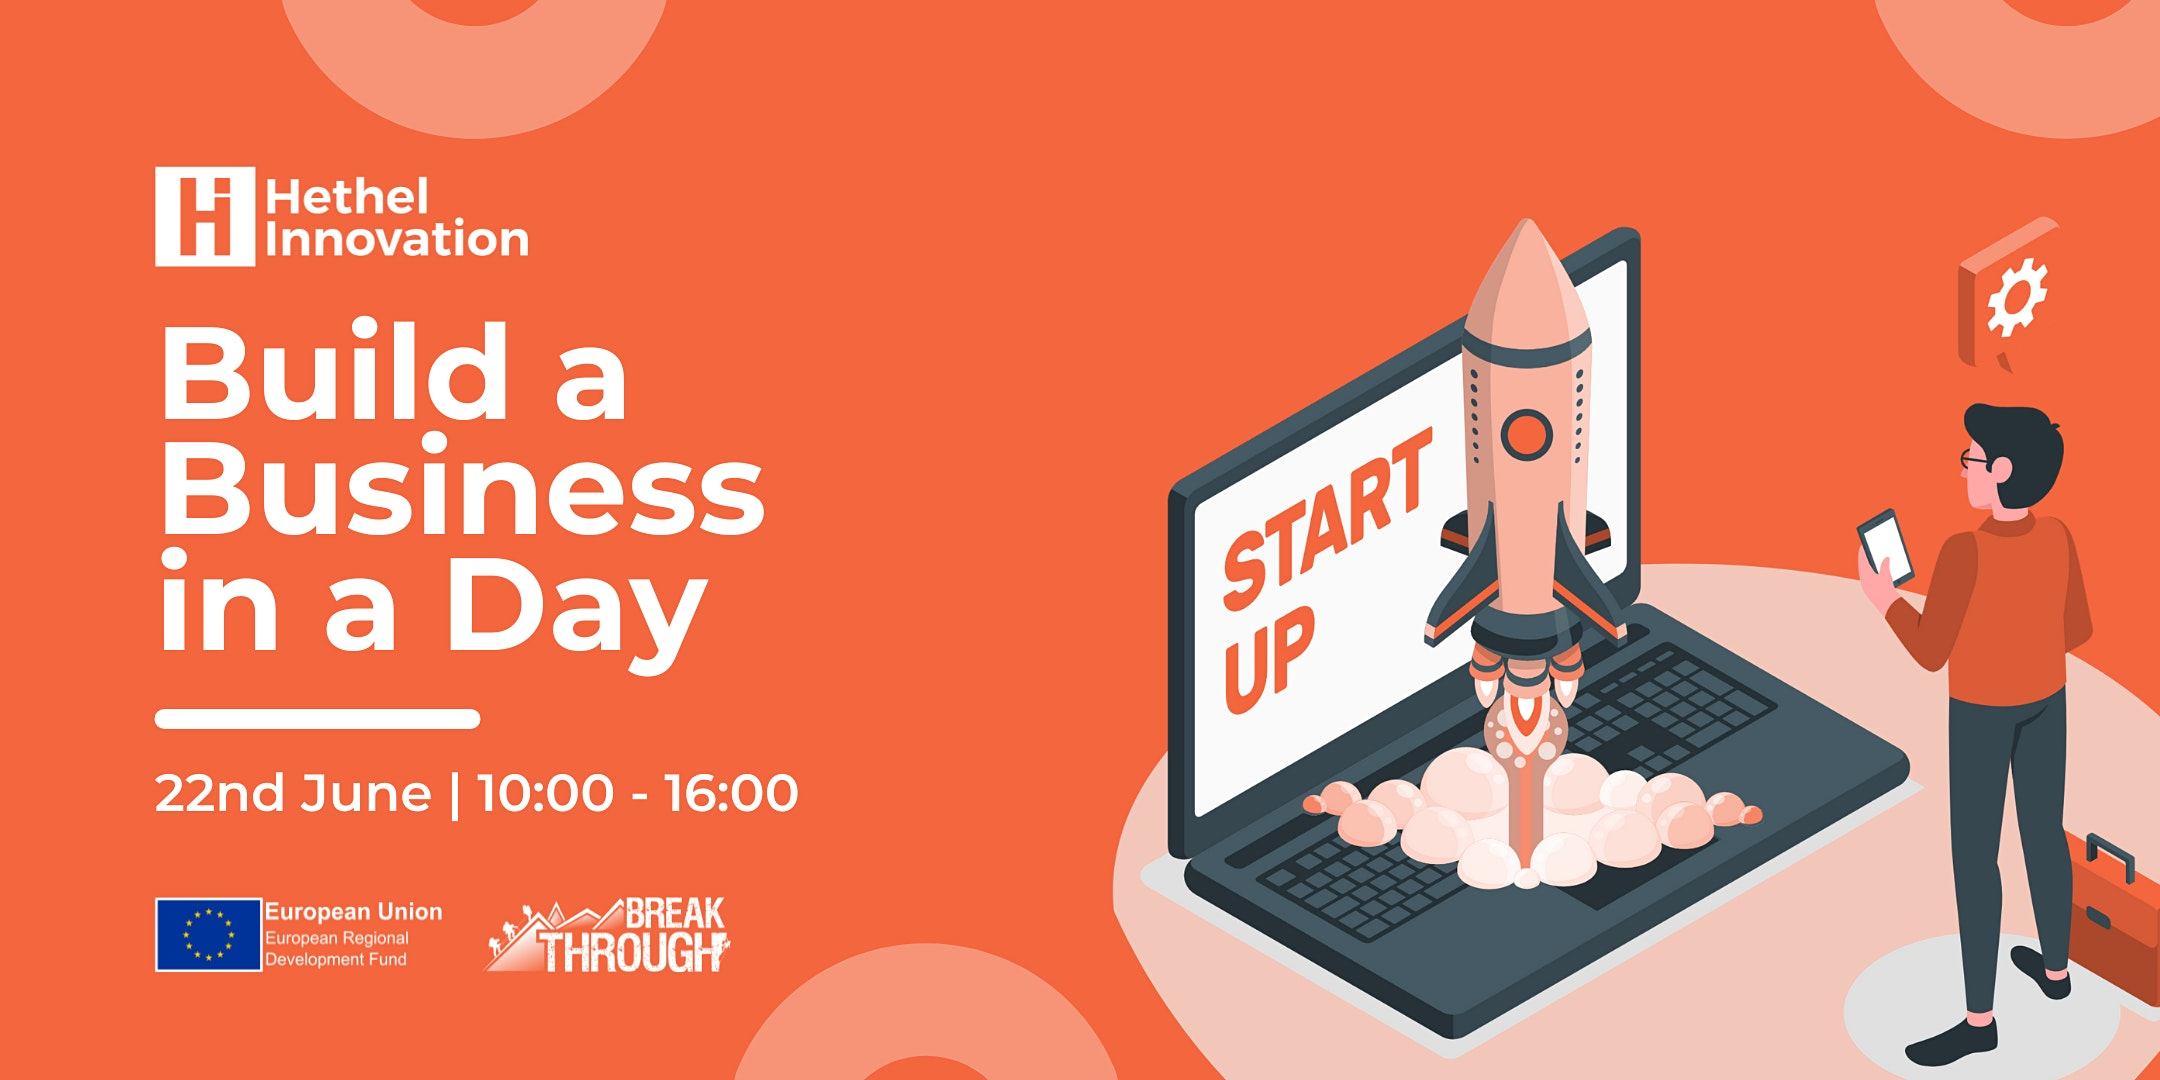 Build a Business in a Day